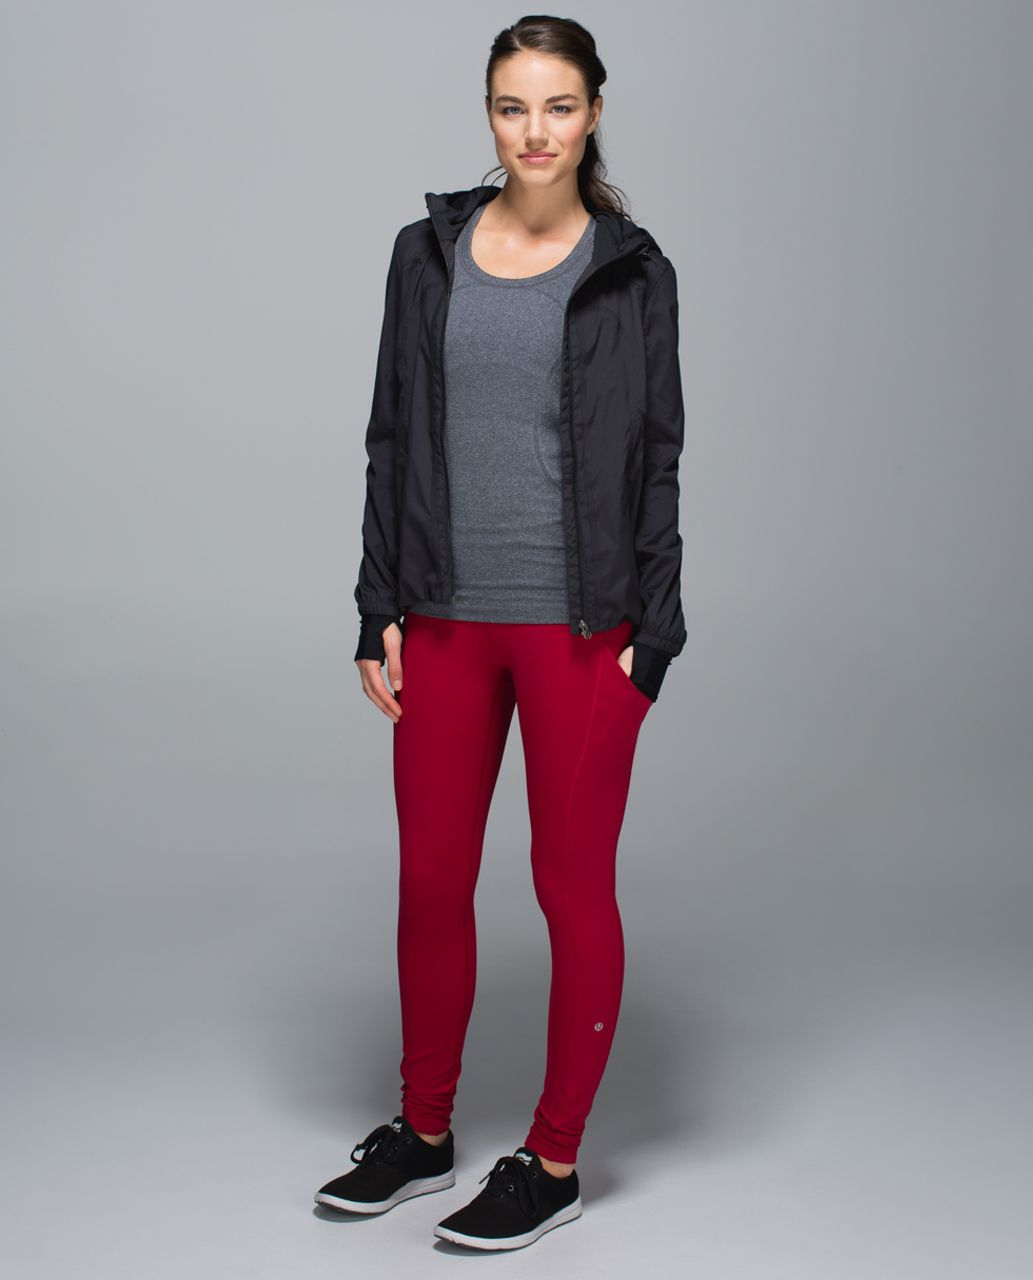 Lululemon Speed Tight II *Full-On Luxtreme (Brushed) - Deepest Cranberry / Wi14 Quilt 20